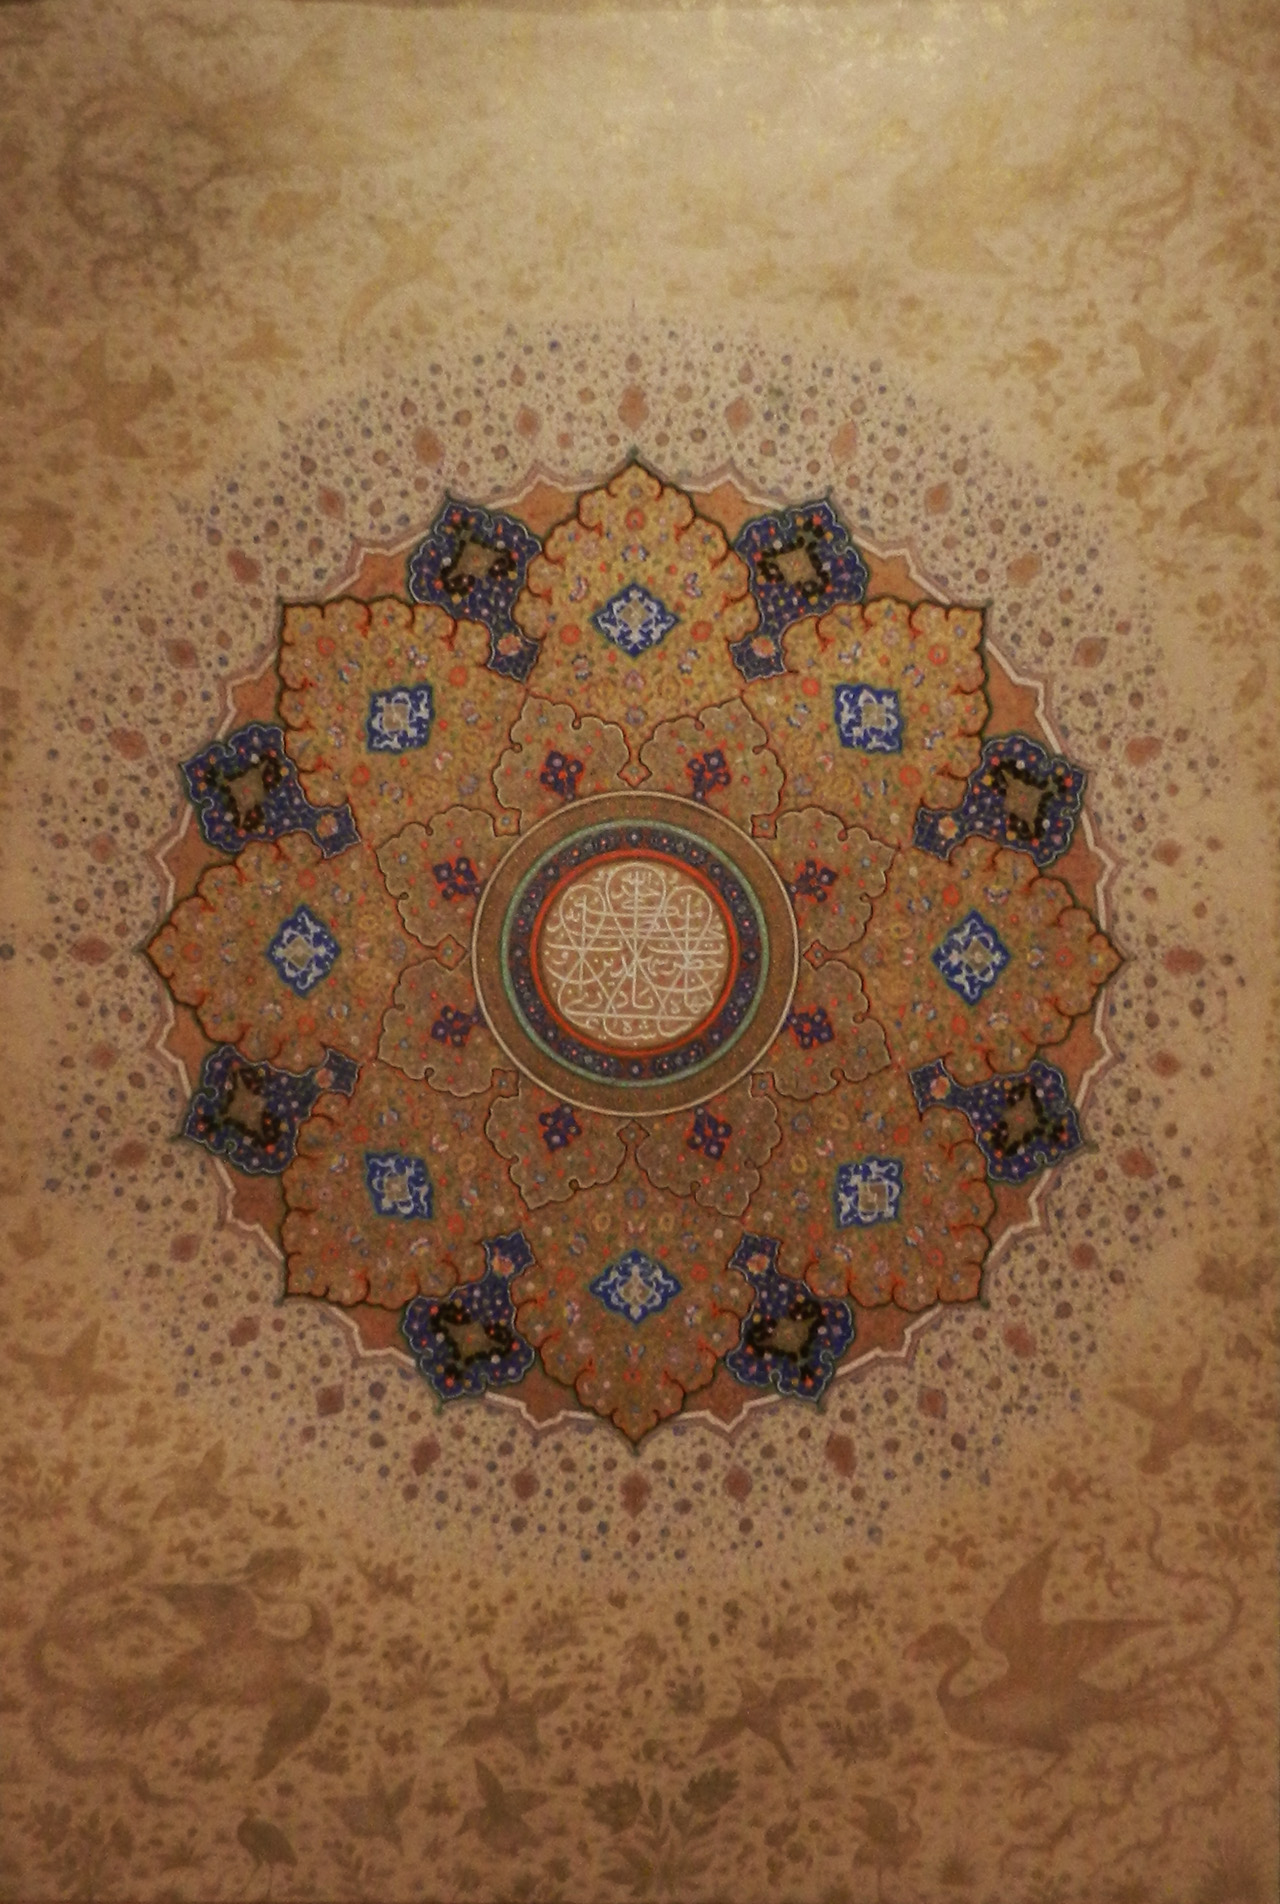 A-shamsa-literal-meaning-%E2%80%9Csun%E2%80%9D-from-the-Met%E2%80%99s-new-Islamic-Art-wing-wallpaper-wp5004216